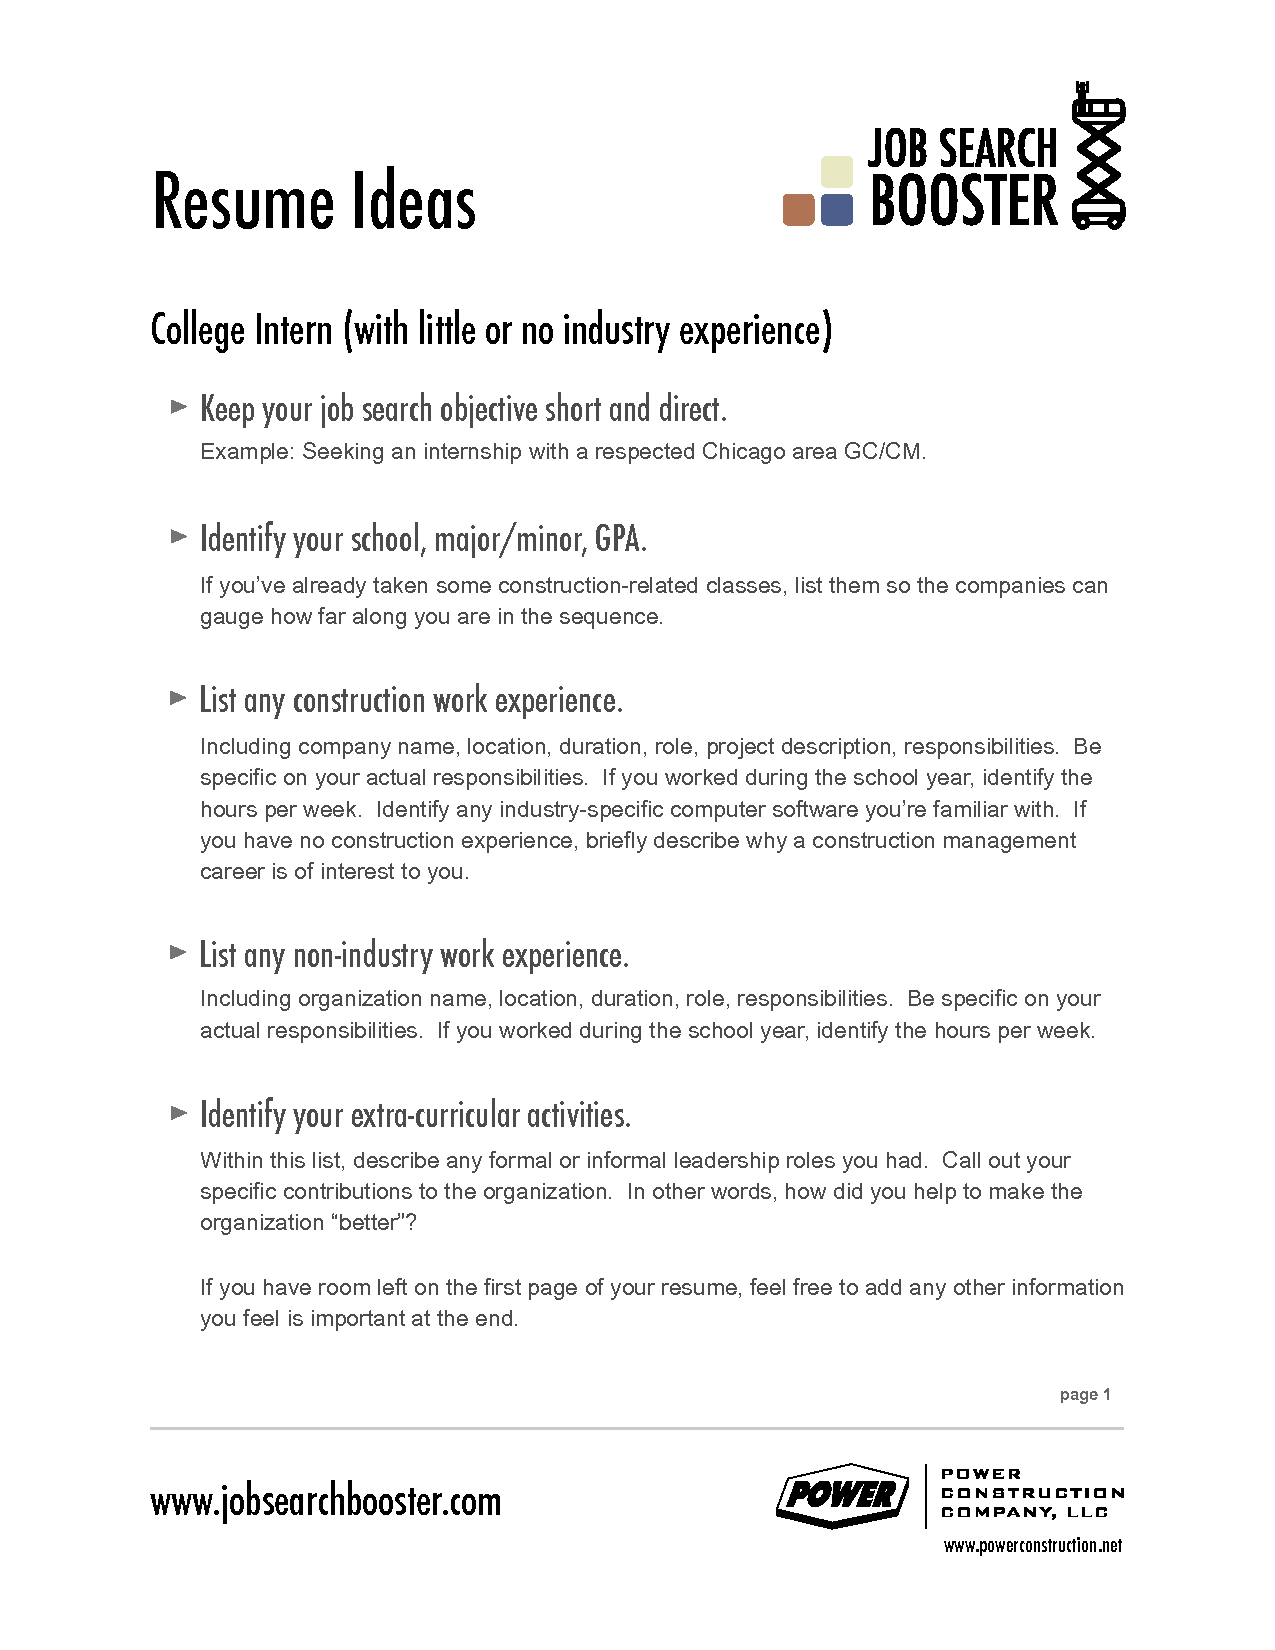 Internship Objectives For Resume Resume Templates Job Objective Objective Resume Resumetemplates